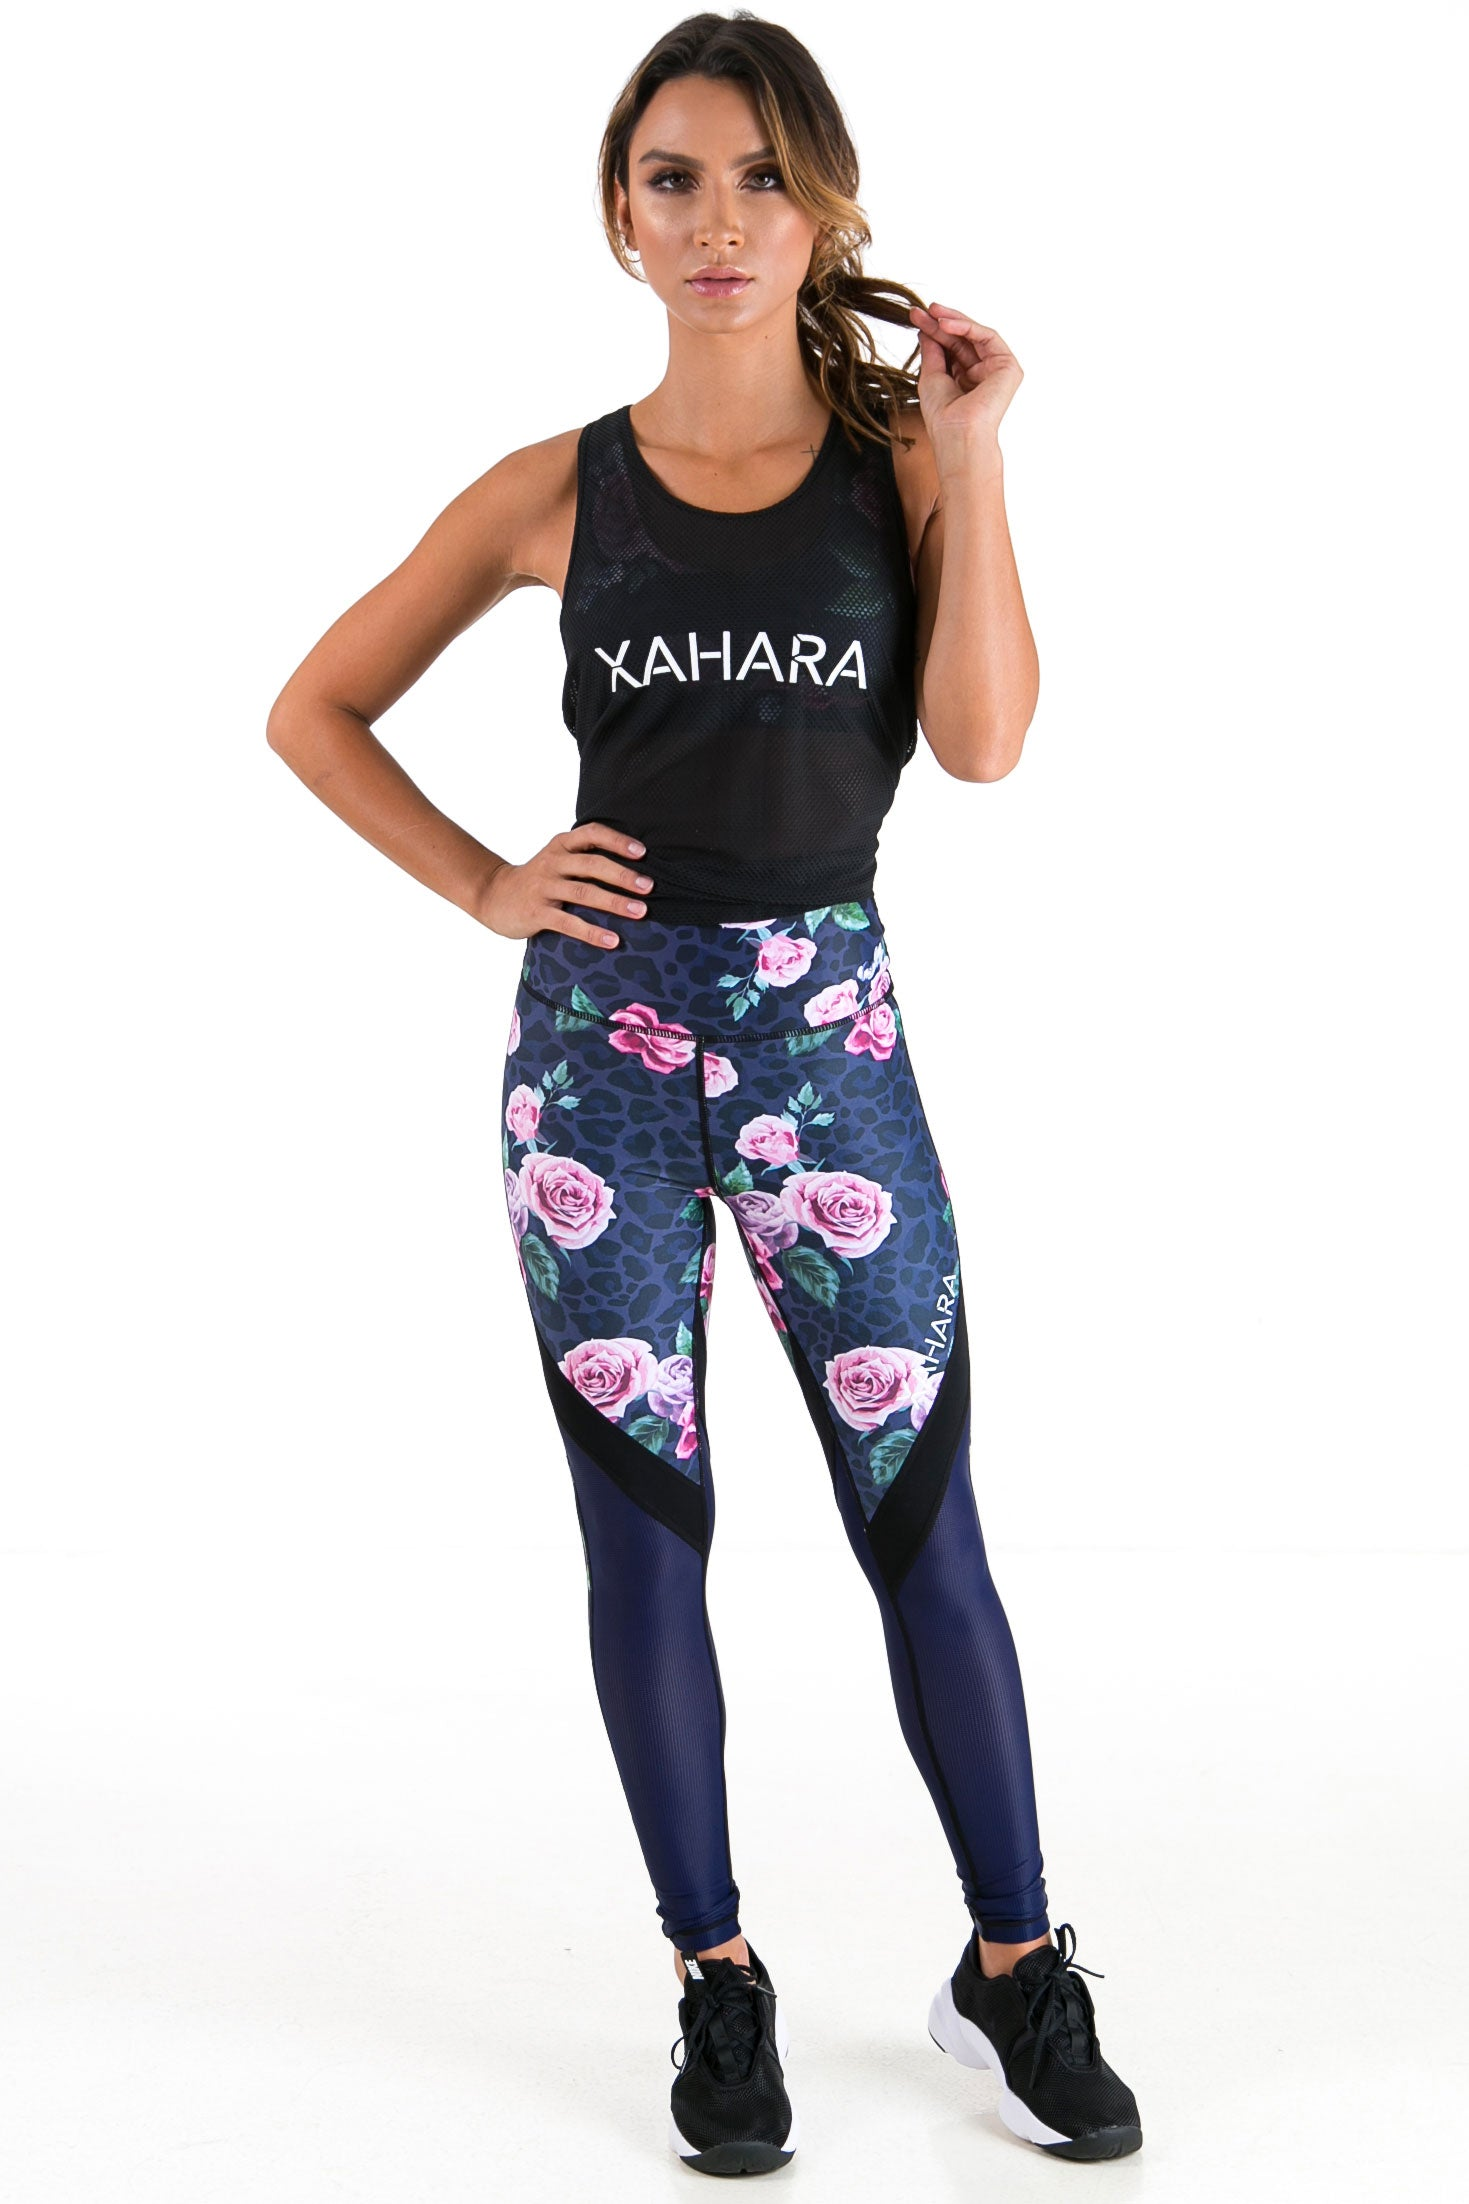 Bootylicious Leggings - Desert Rose ( XS & L Left) - Xahara Activewear